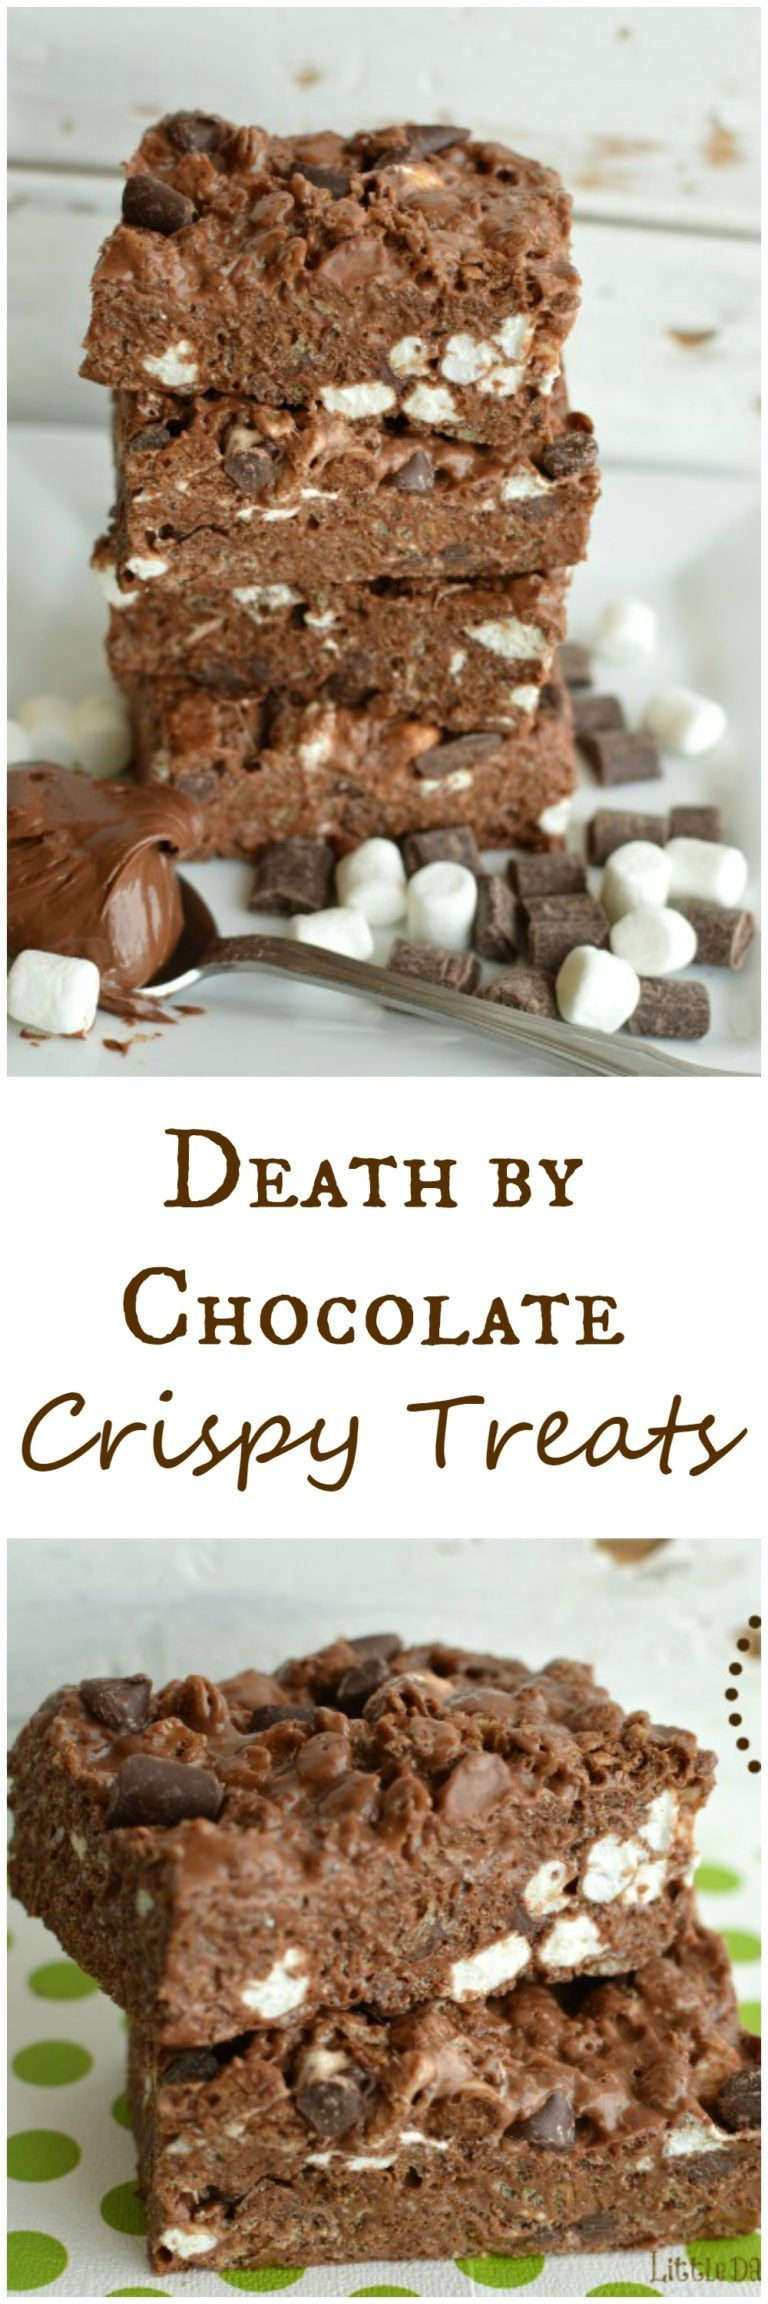 Death By Chocolate Crispy Treats #crispytreats